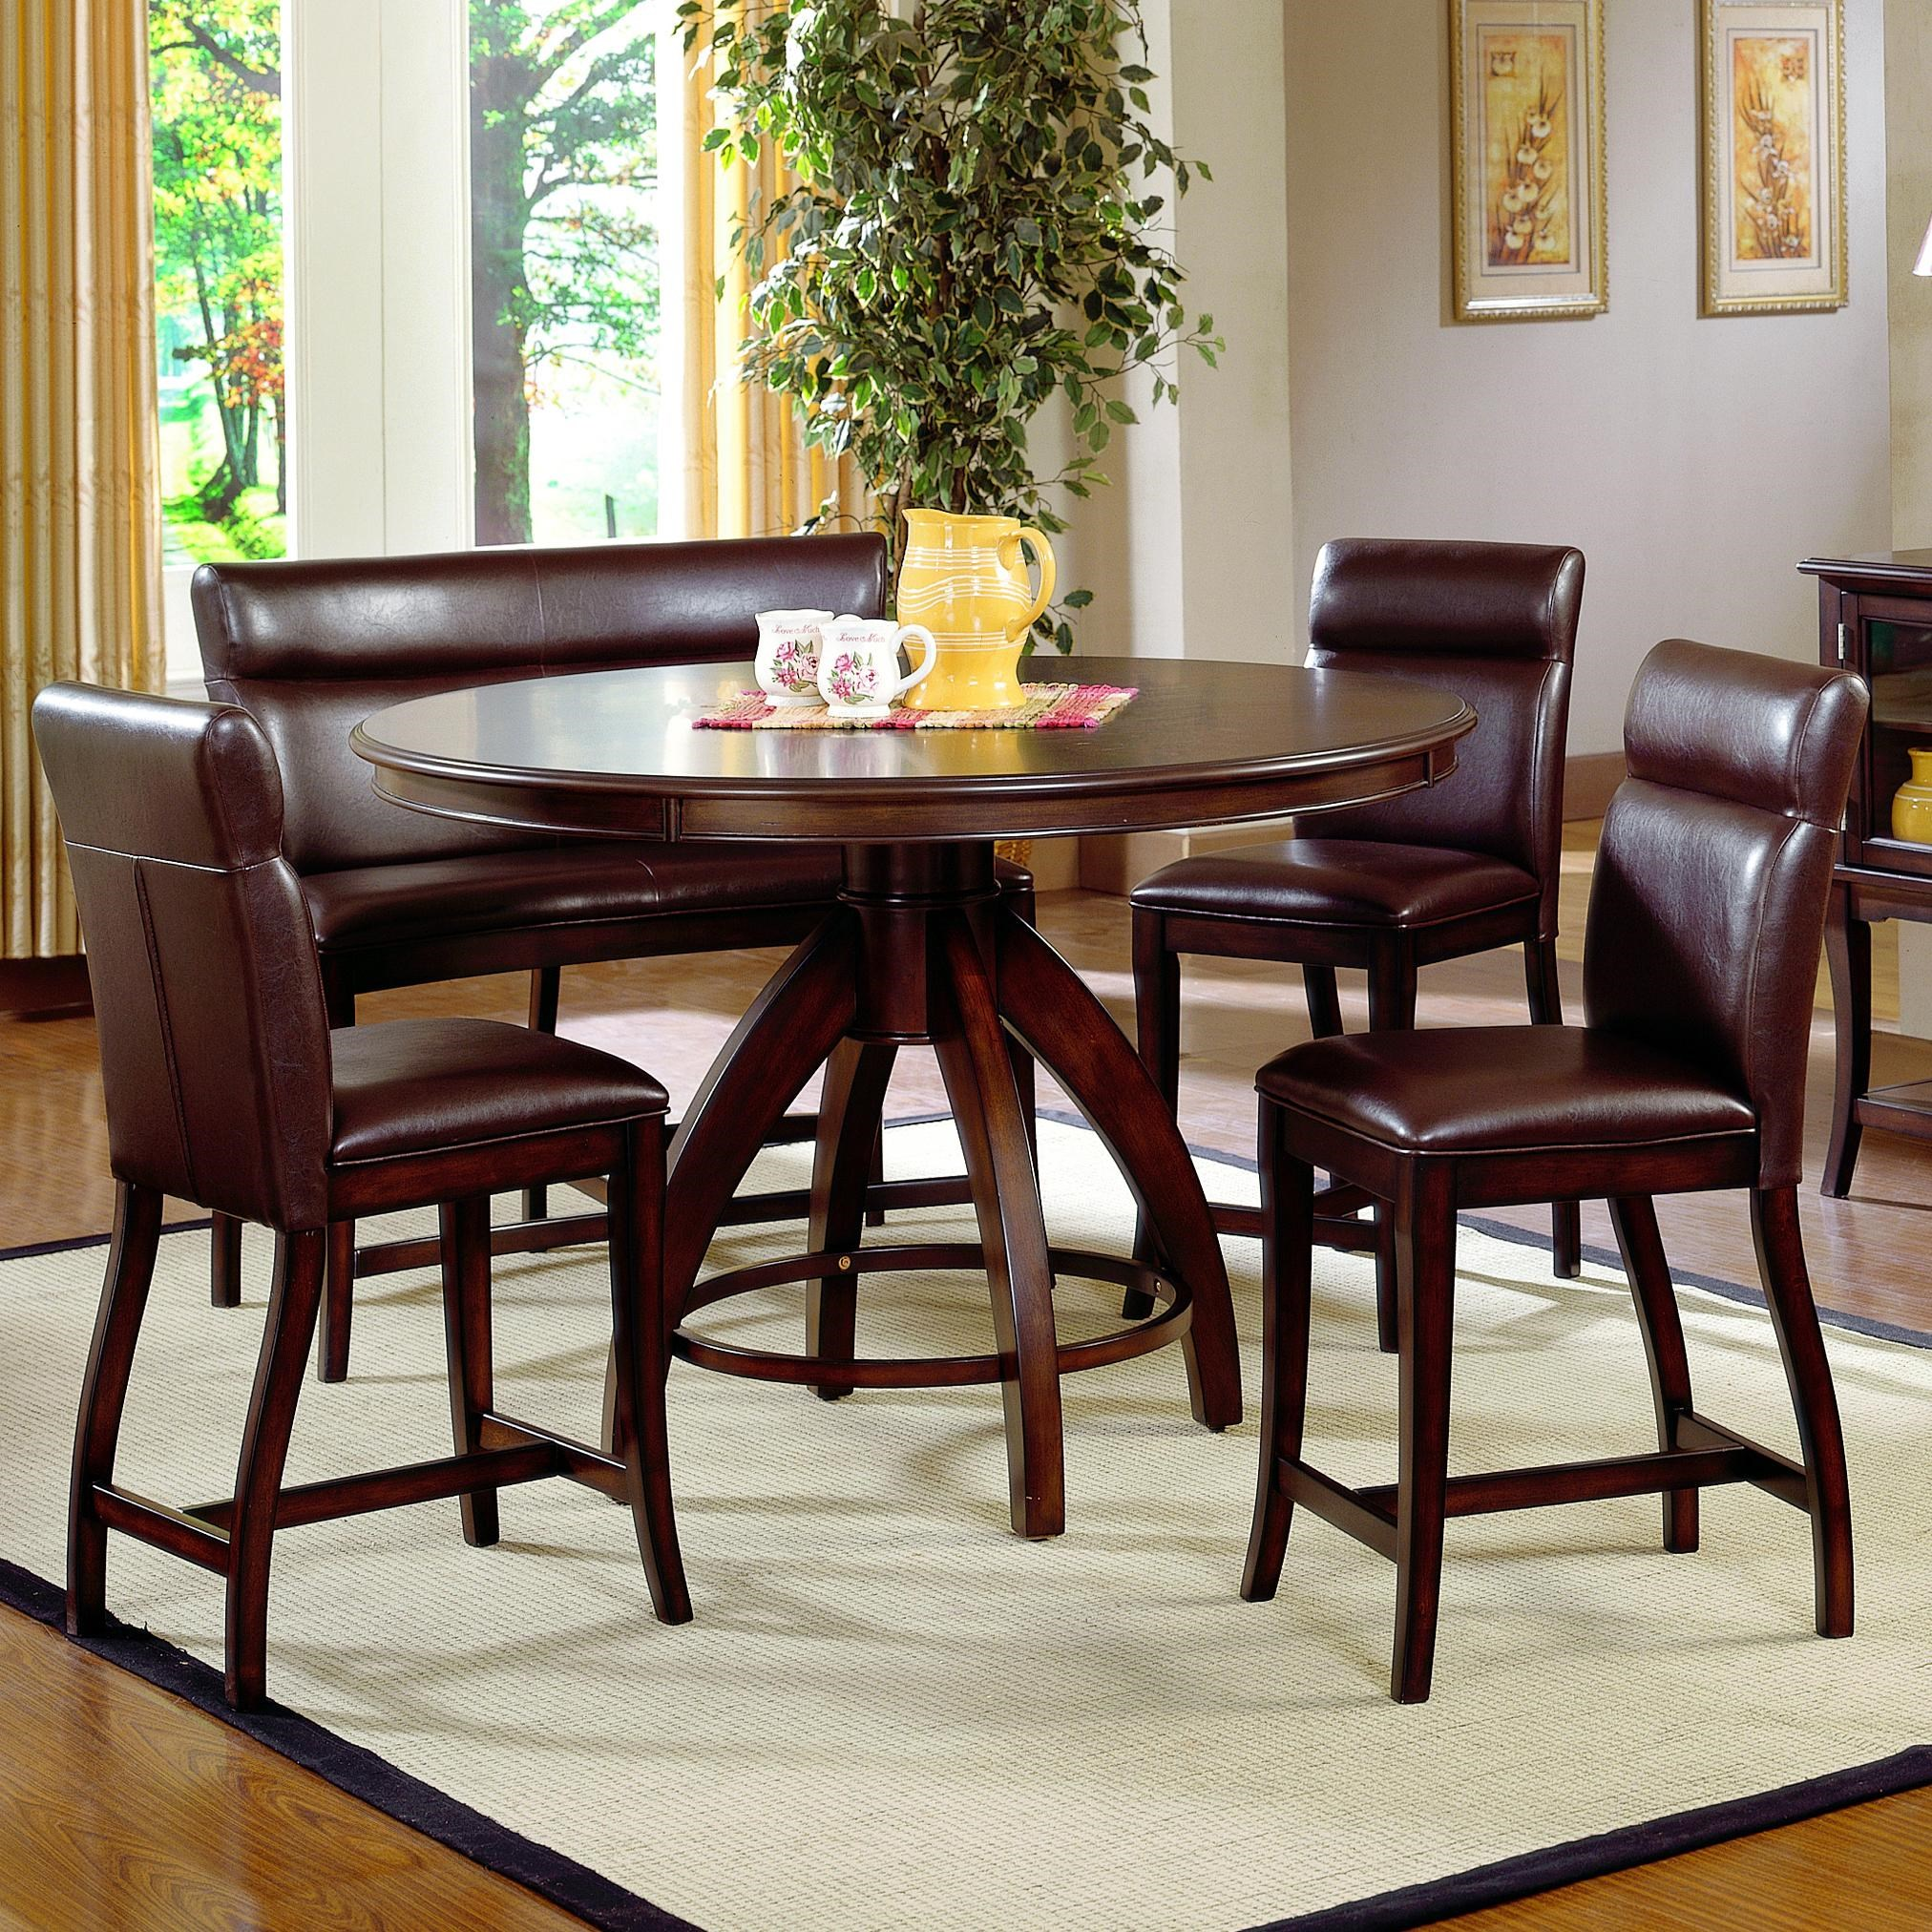 Nottingham 5 Piece Timeless Counter Height Dining Set